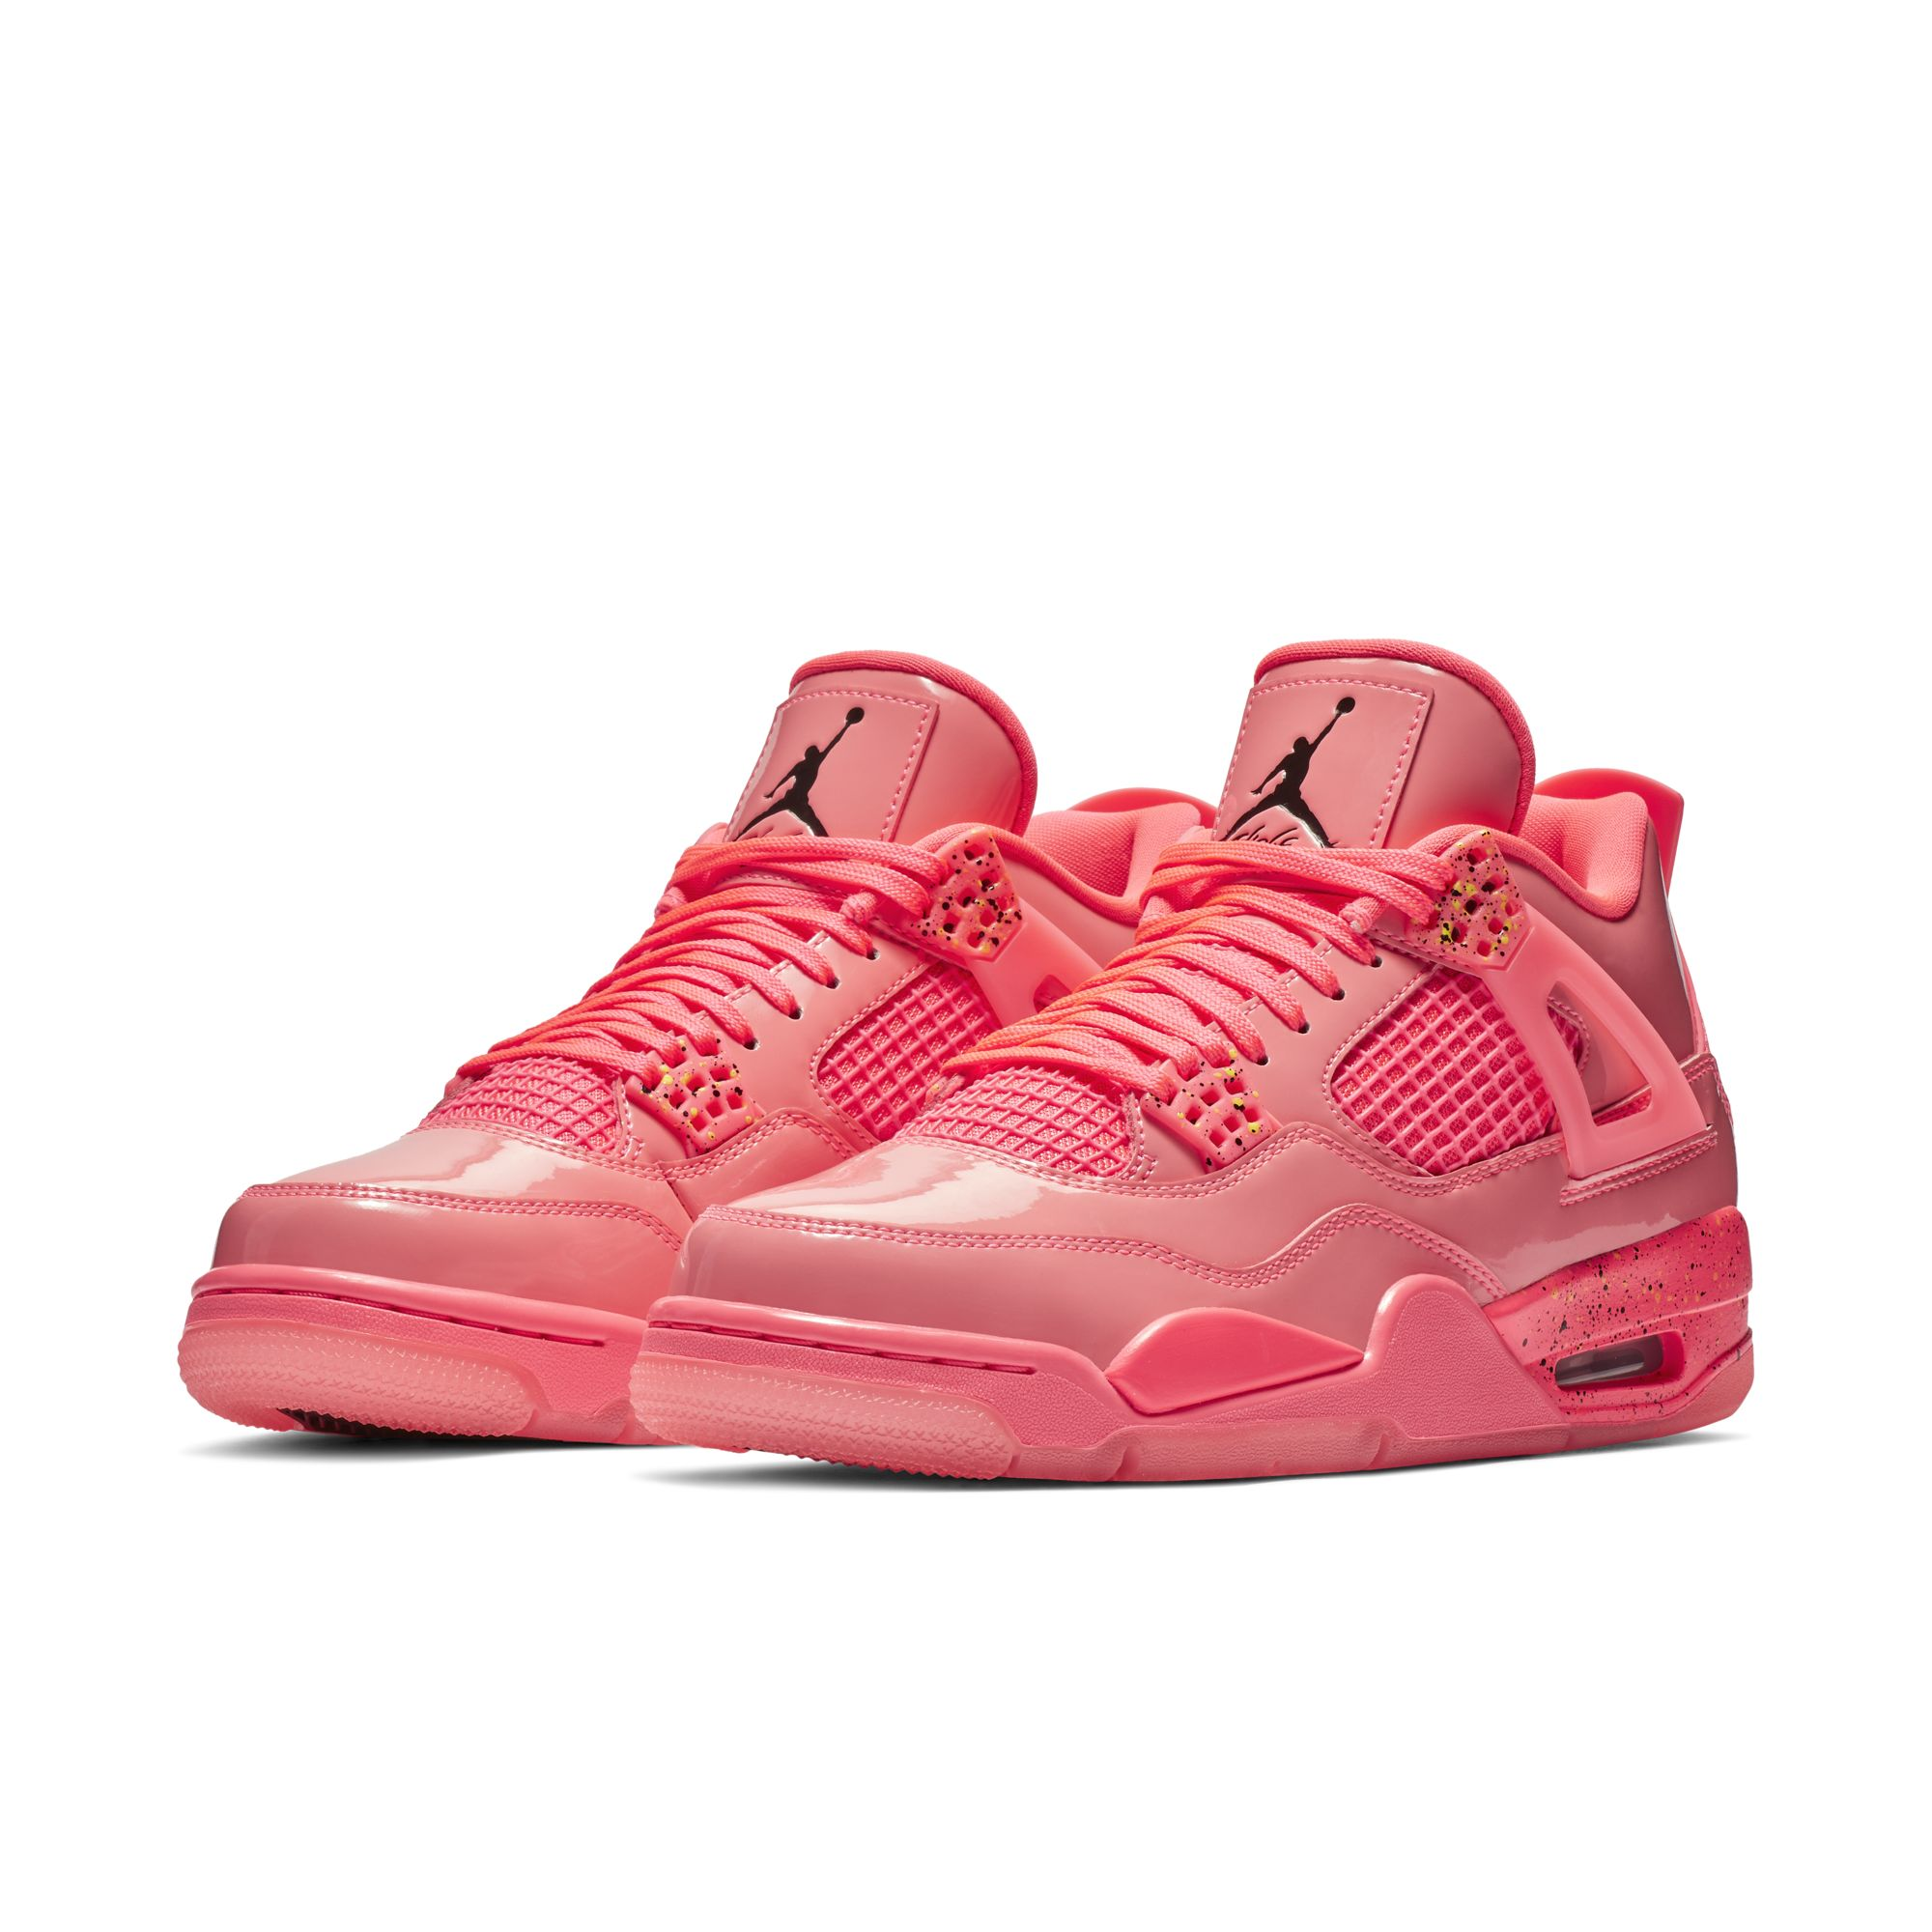 WMNS AIR JORDAN 4 RETRO NRG HOT PUNCH:BLACK-VOLIGHT 1